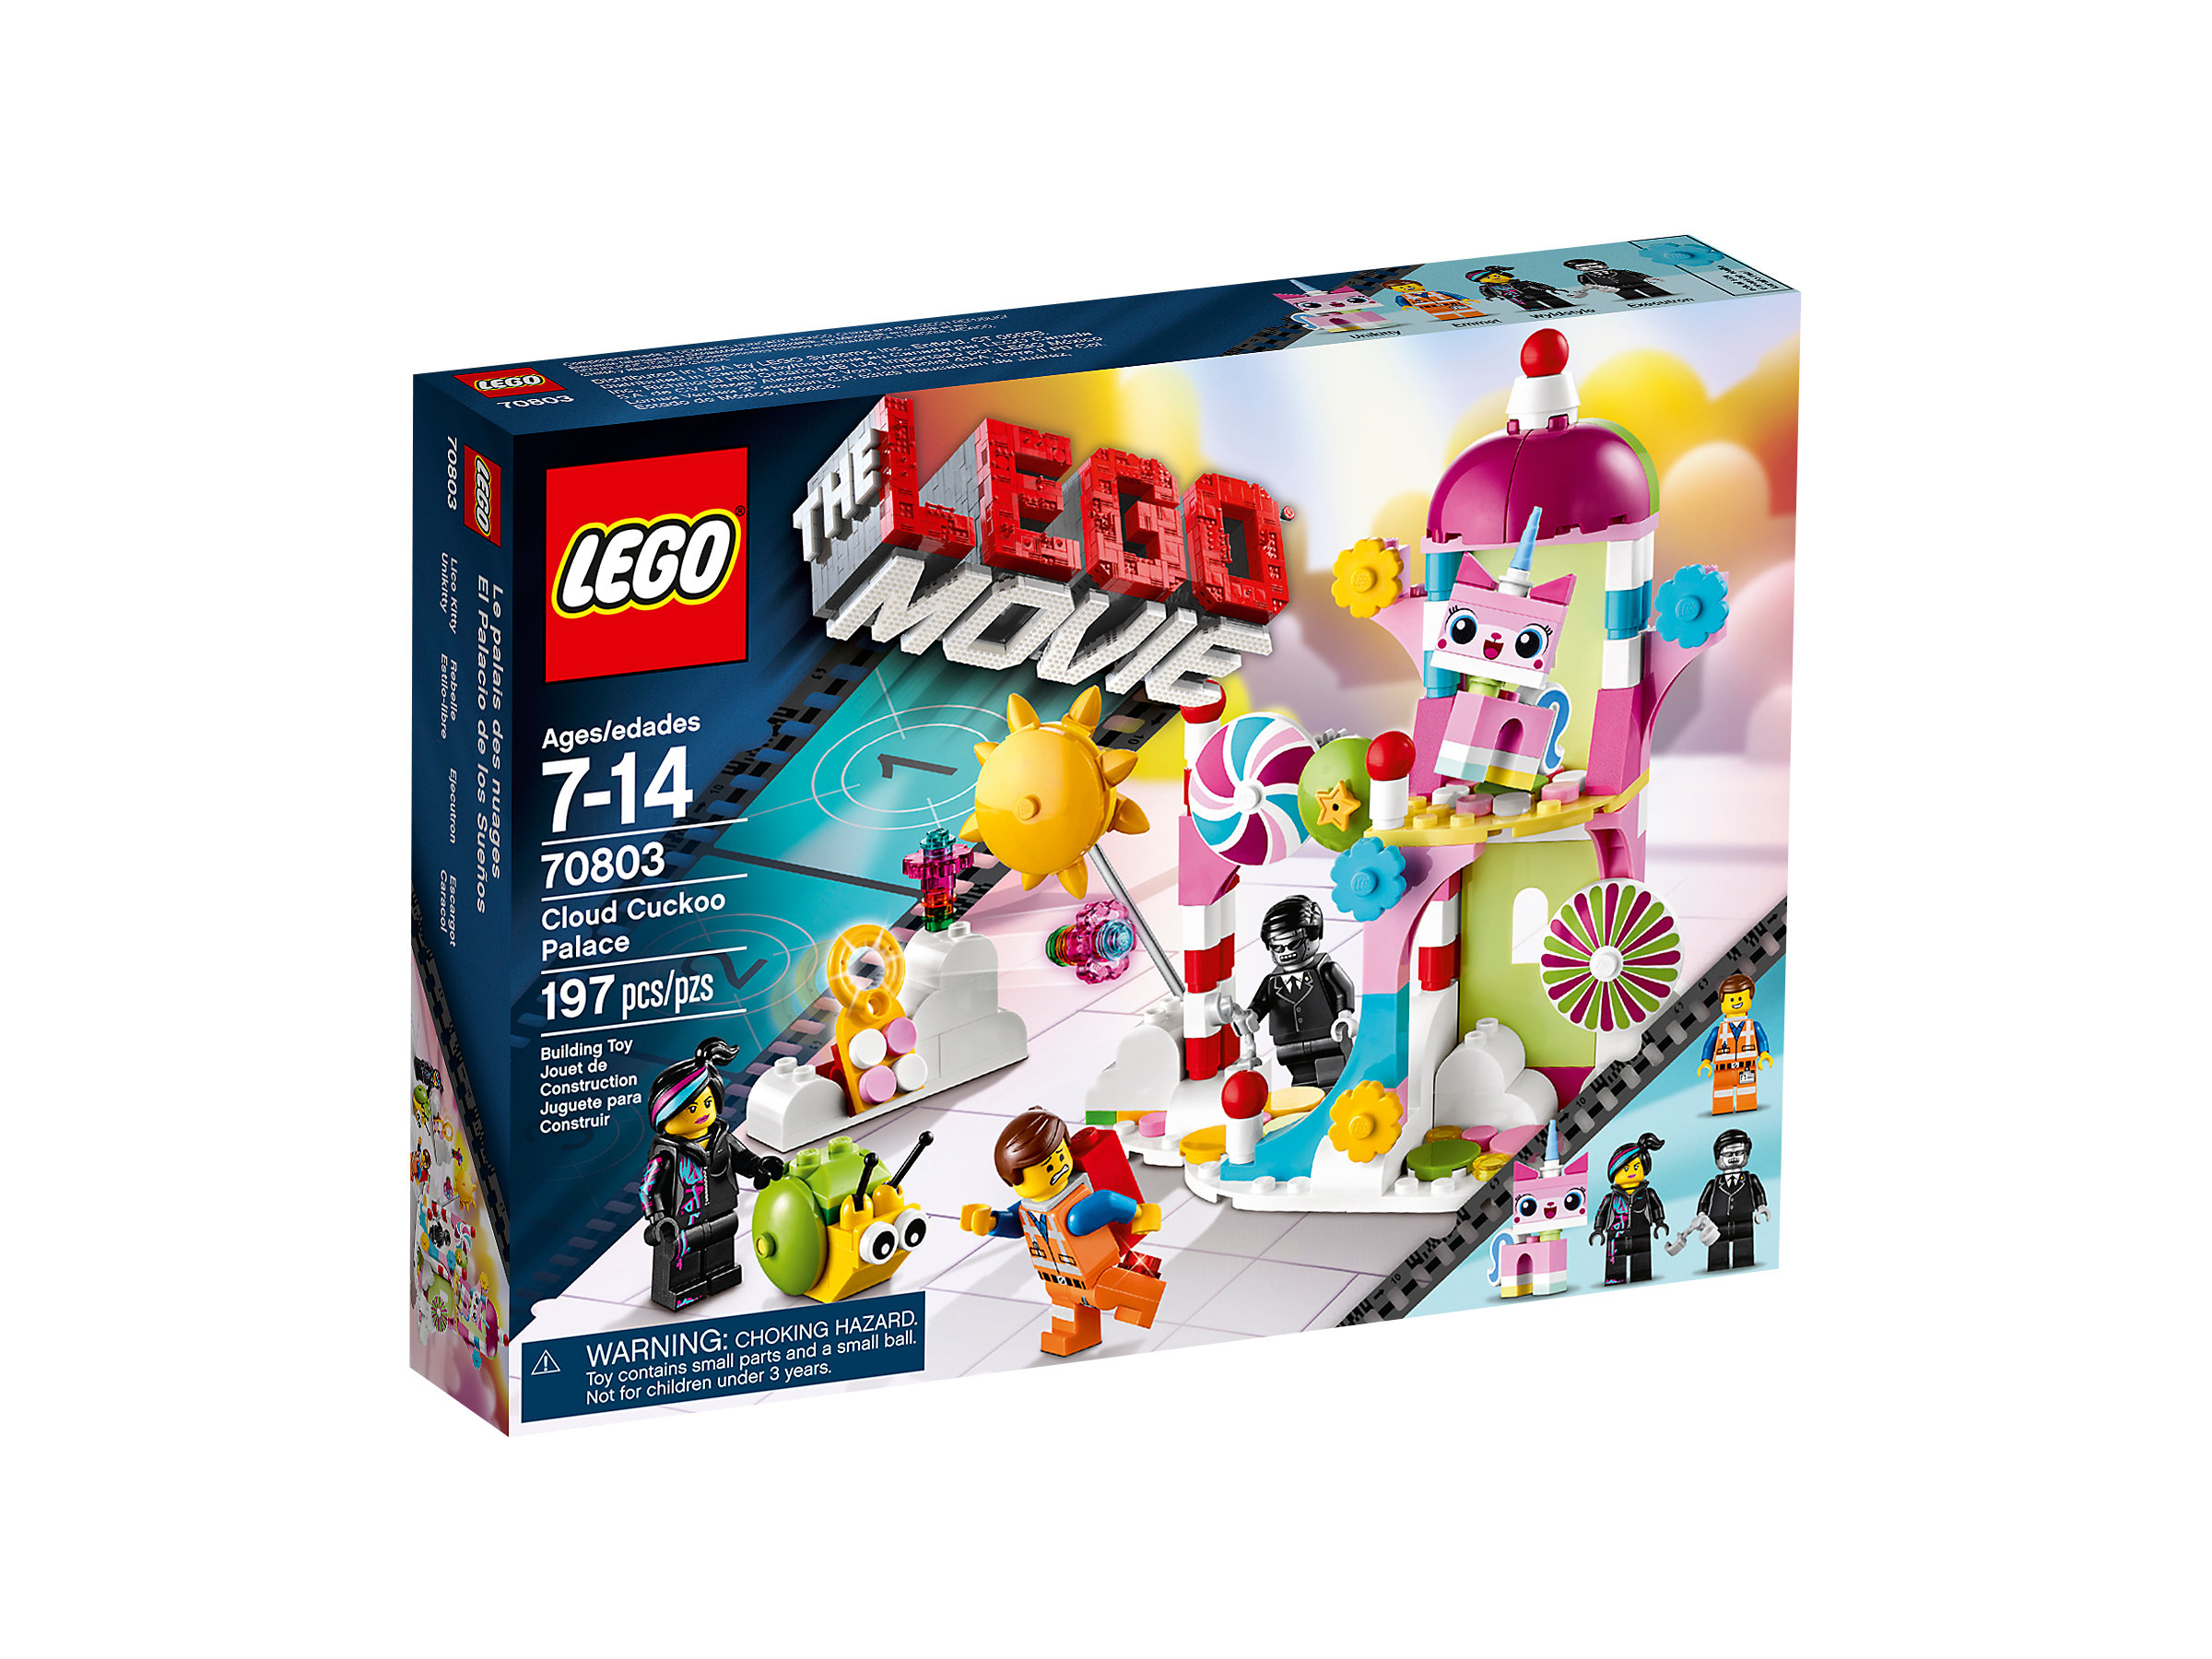 LEGO® The LEGO Movie™ 70803 SNAIL from CLOUD CUCKOO PALACE Minifigure NEW